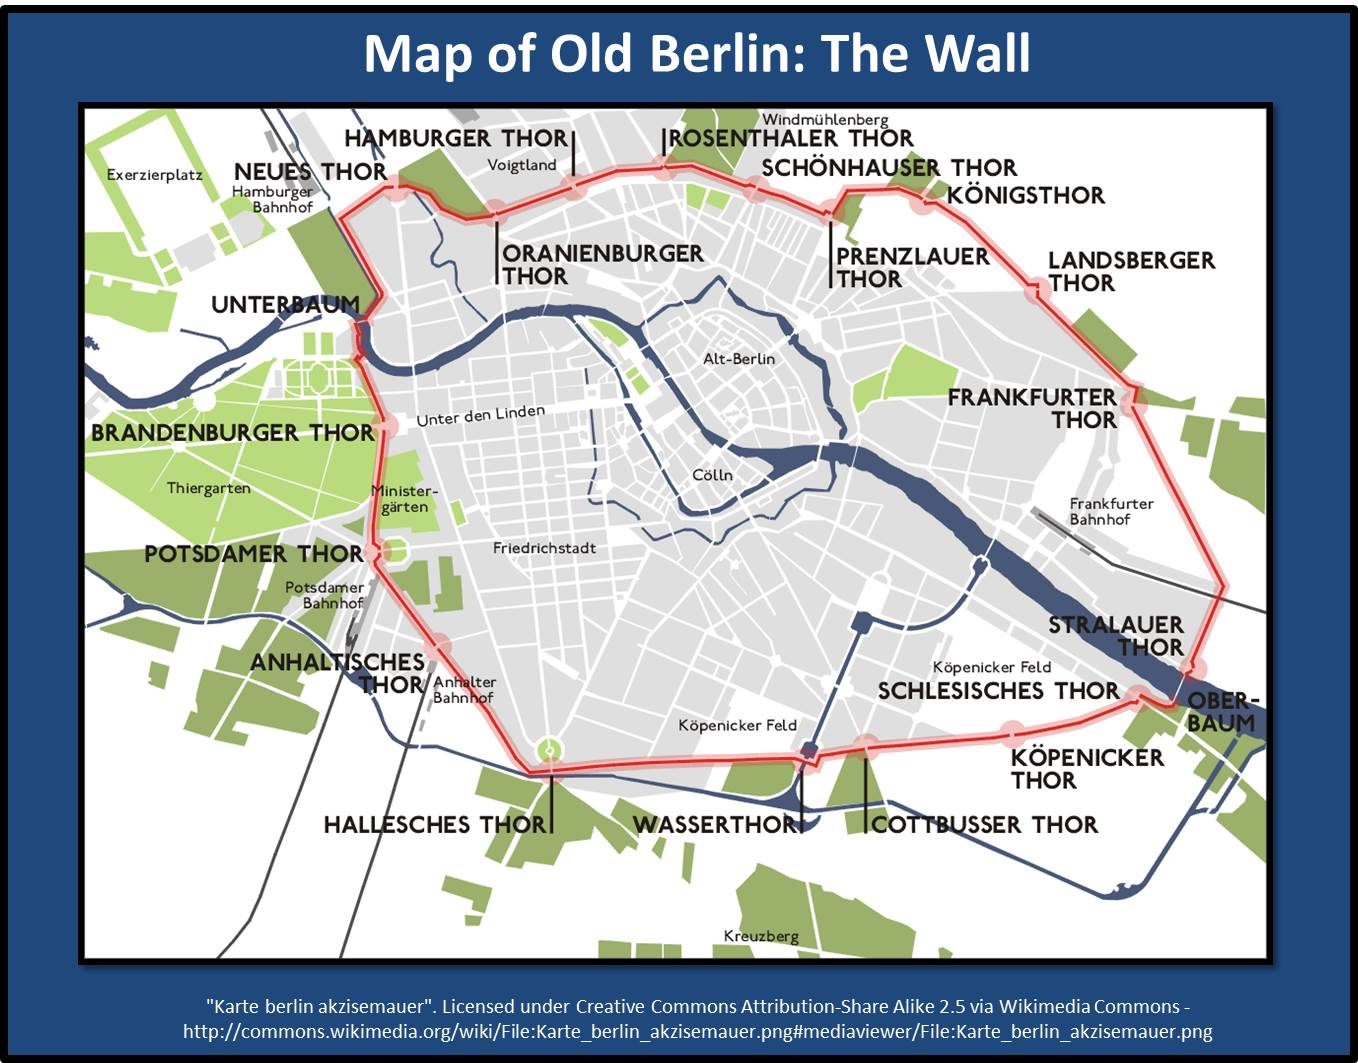 Where Were You Life Lessons - Map of divided berlin